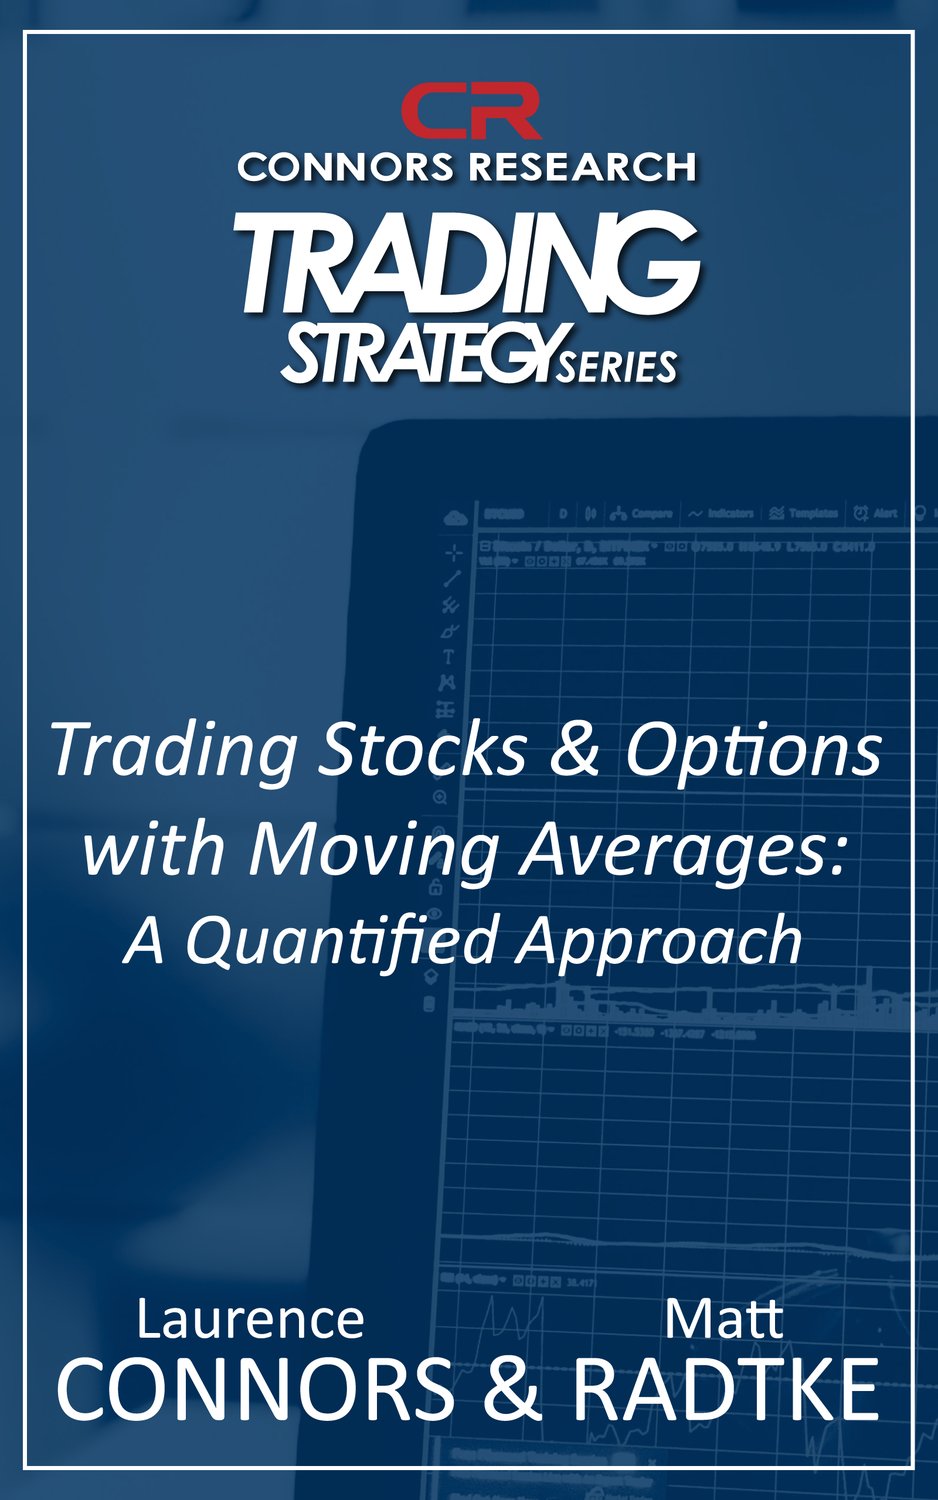 Connors Research Trading Strategy Series: Trading Stocks and Options with Moving Averages - A Quantified Approach